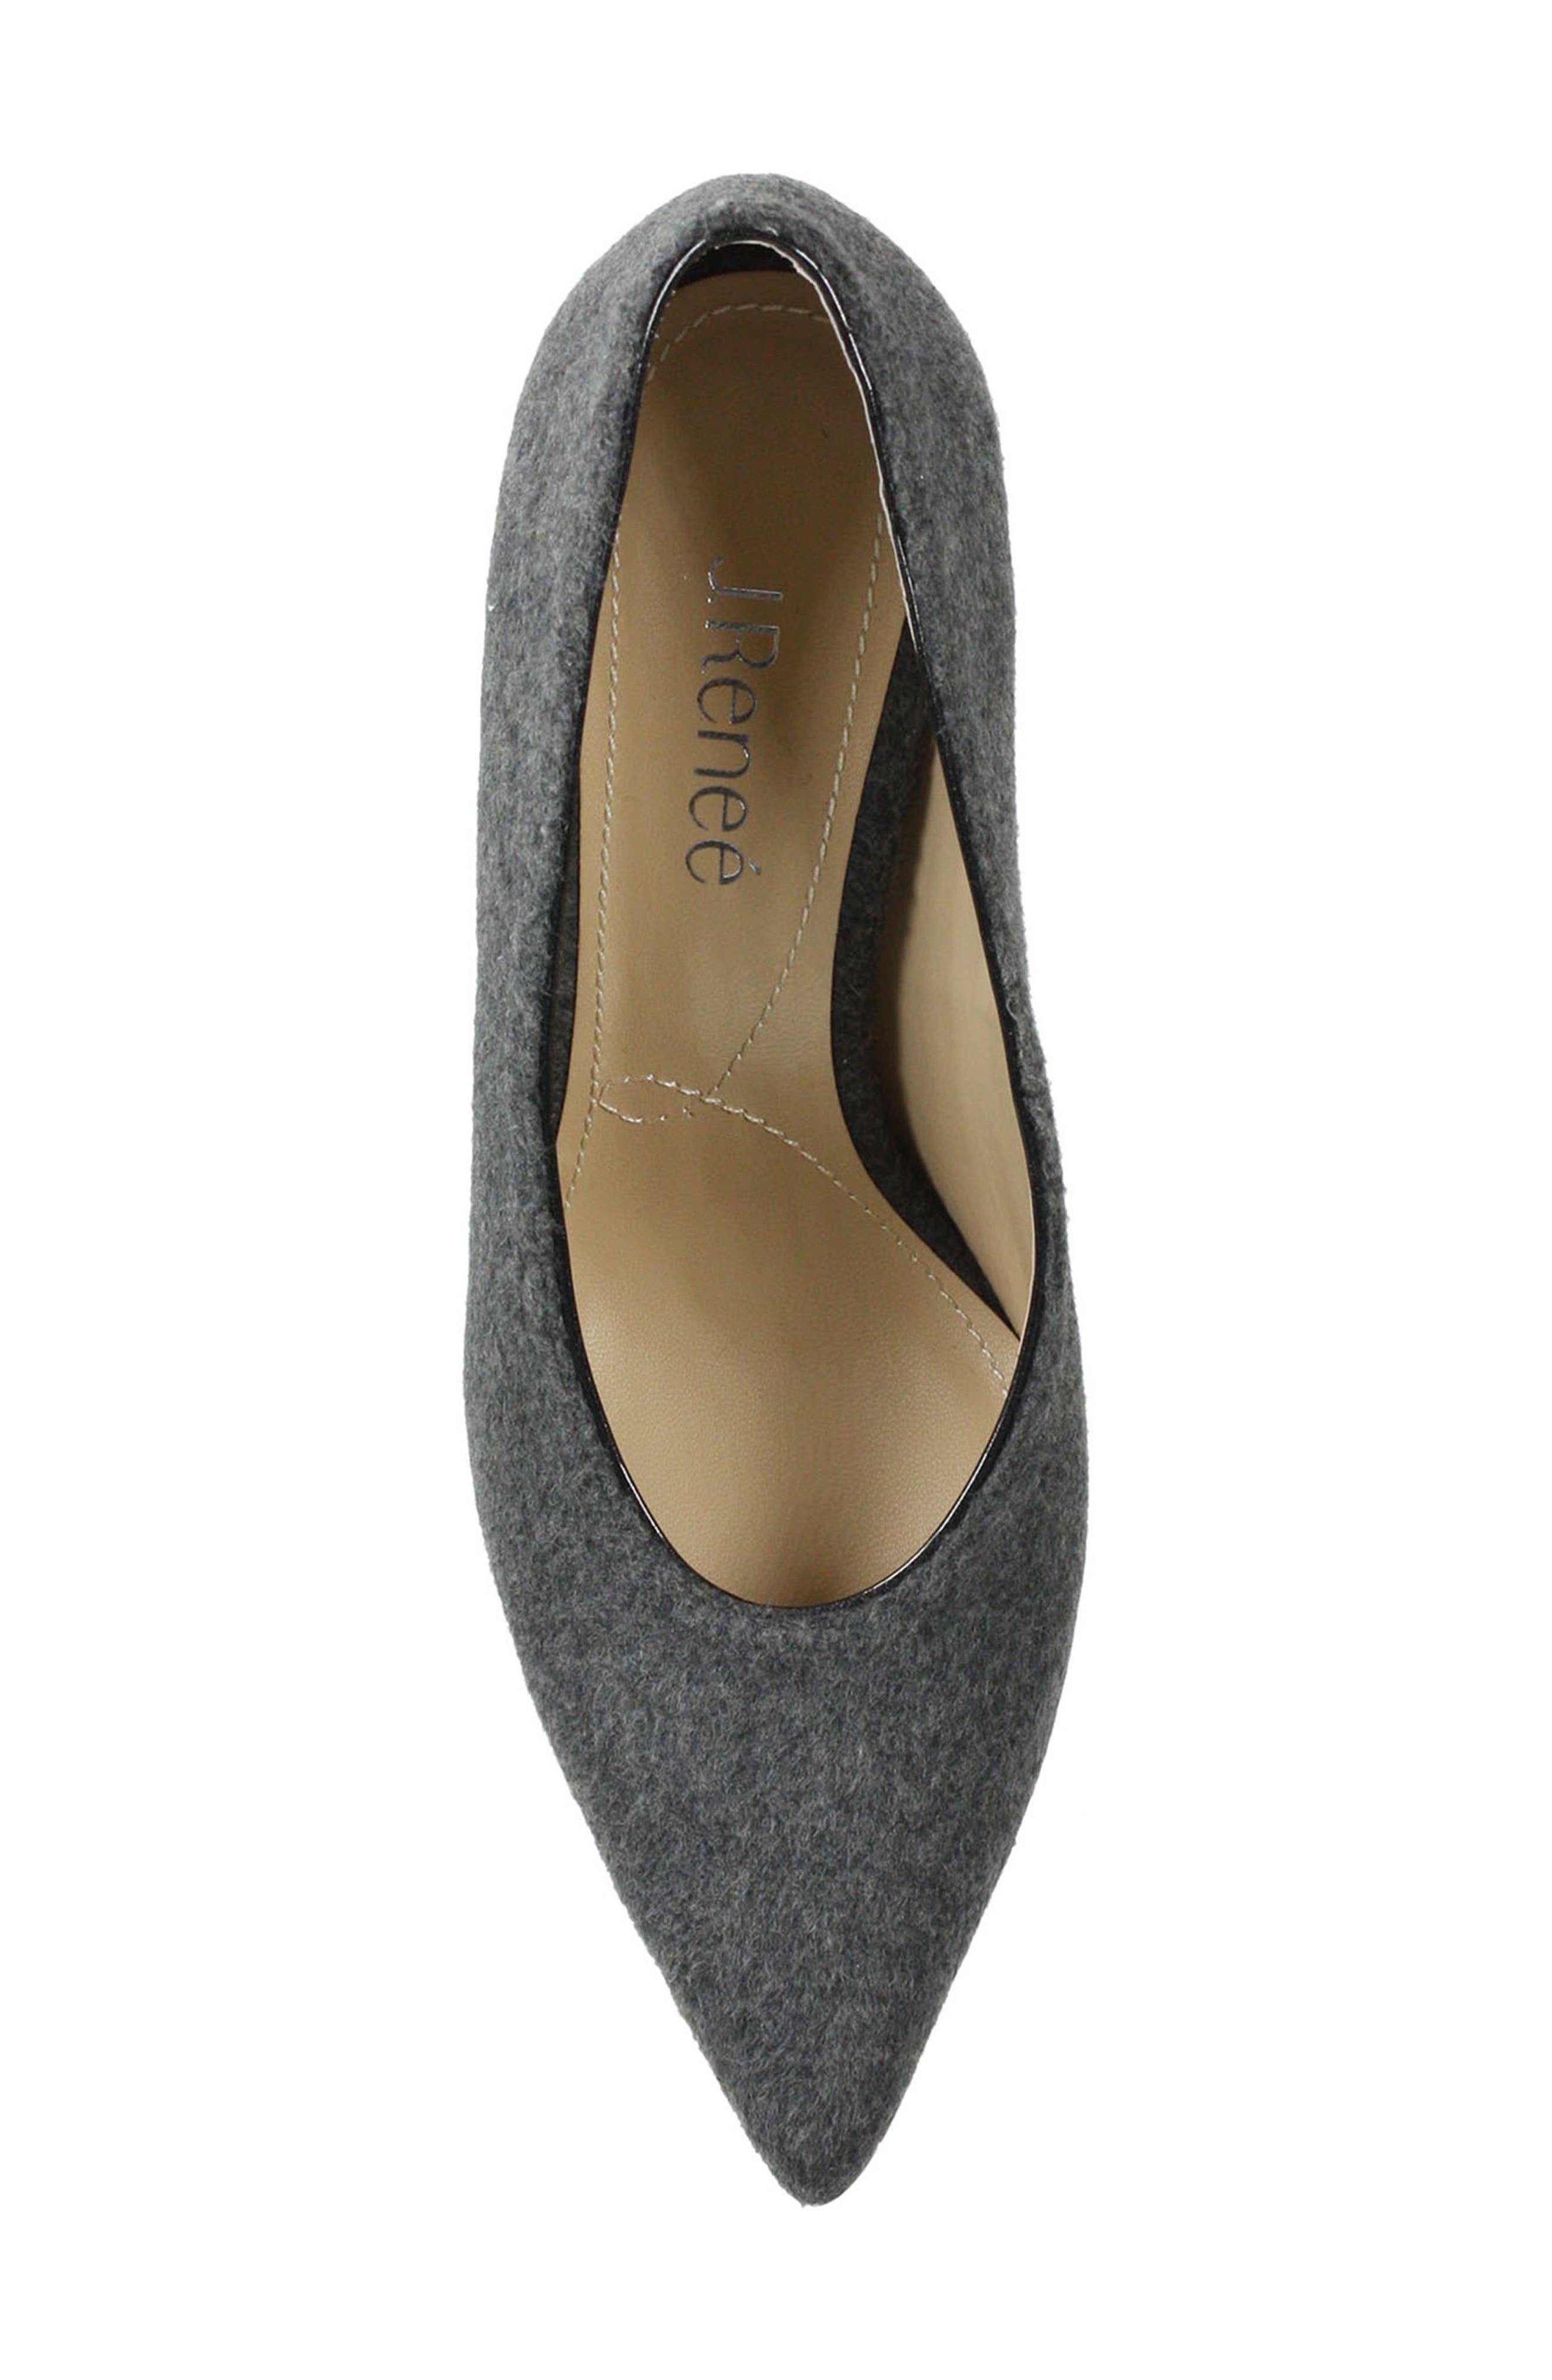 J. RENEÉ, Madisson Pointy Toe Pump, Alternate thumbnail 5, color, GREY FABRIC